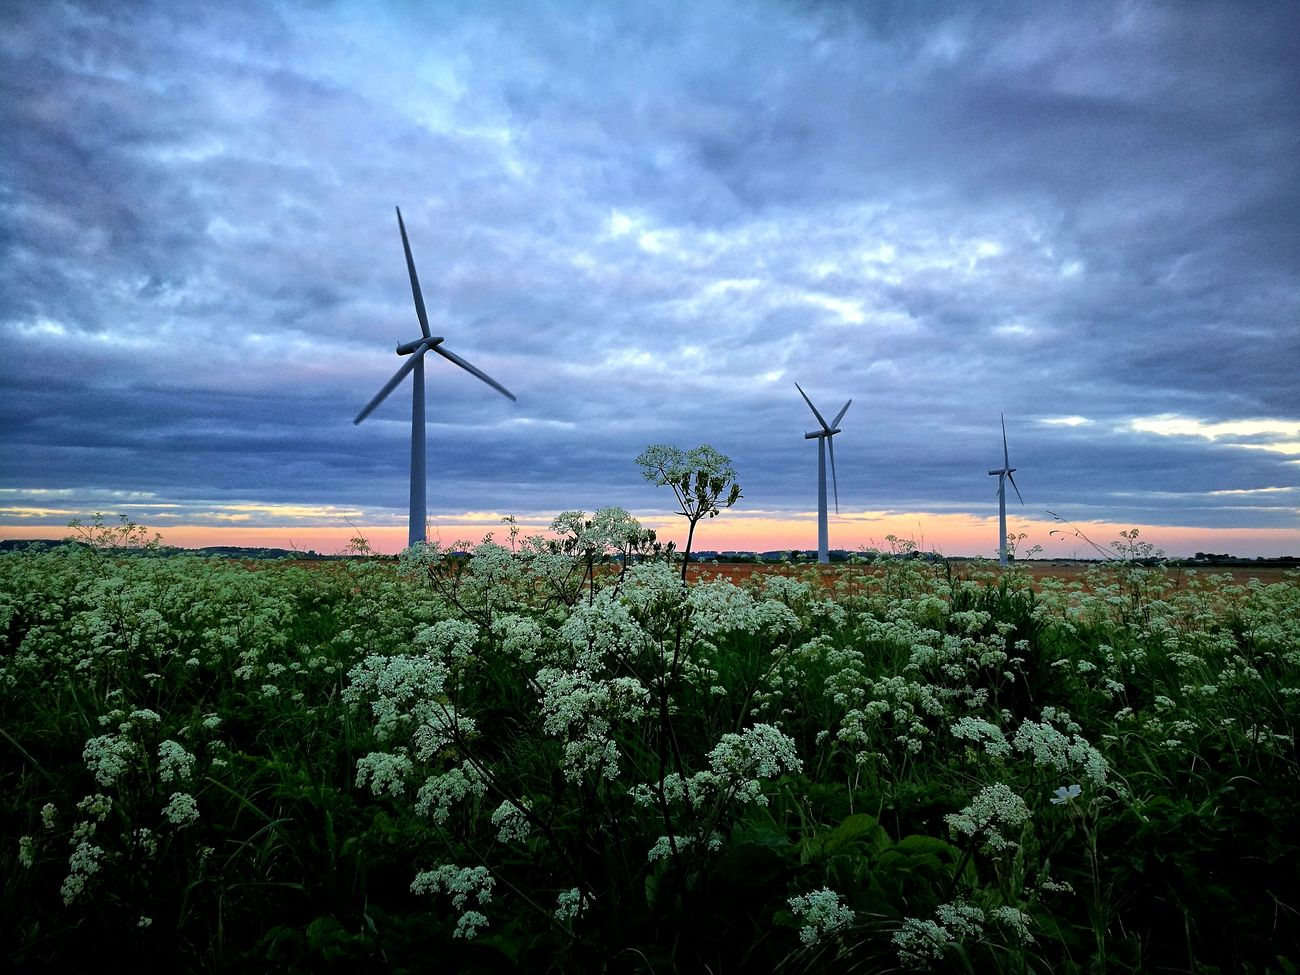 Travel Photography Cloud - Sky No People Agriculture Wind Turbine Nature Rural Scene Sky Landscape Alternative Energy Beauty In Nature Passion Loveit Photo Beauty In Nature Myplace Exploring Taking Photos Londra Inghilterra Flowers Inmyheart Always The Great Outdoors - 2017 EyeEm Awards